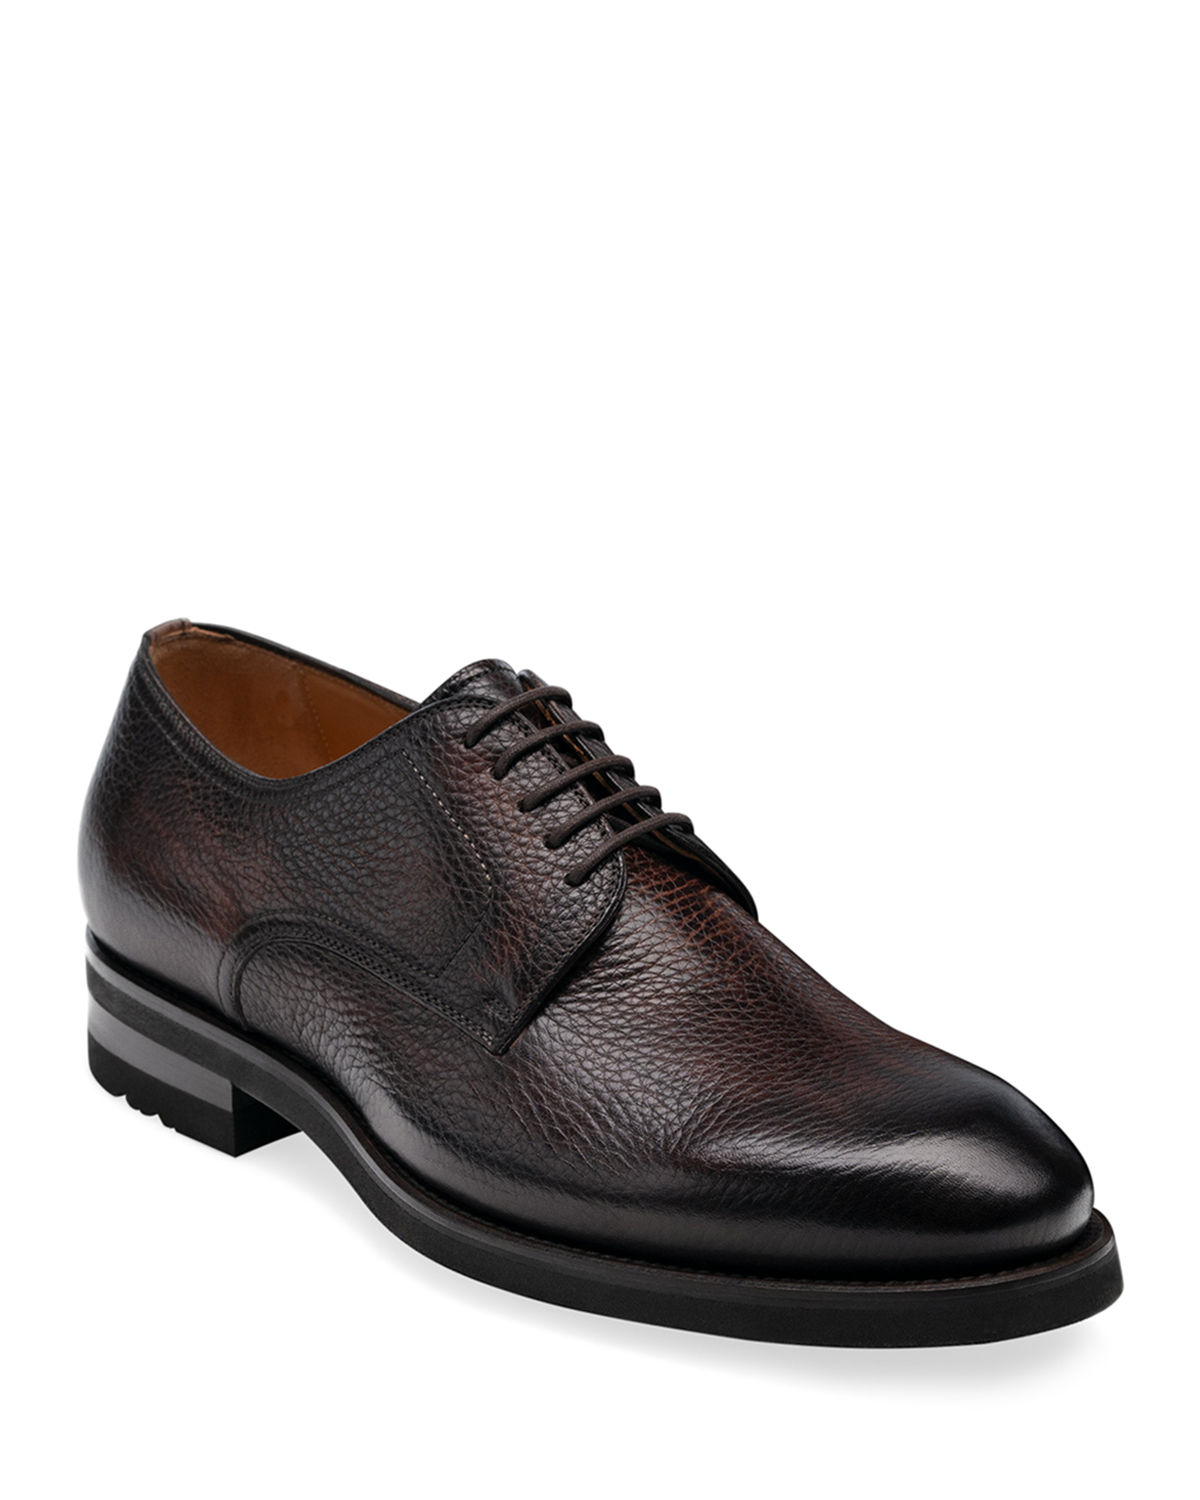 Men's Melich II Pebbled Leather Derby Shoes